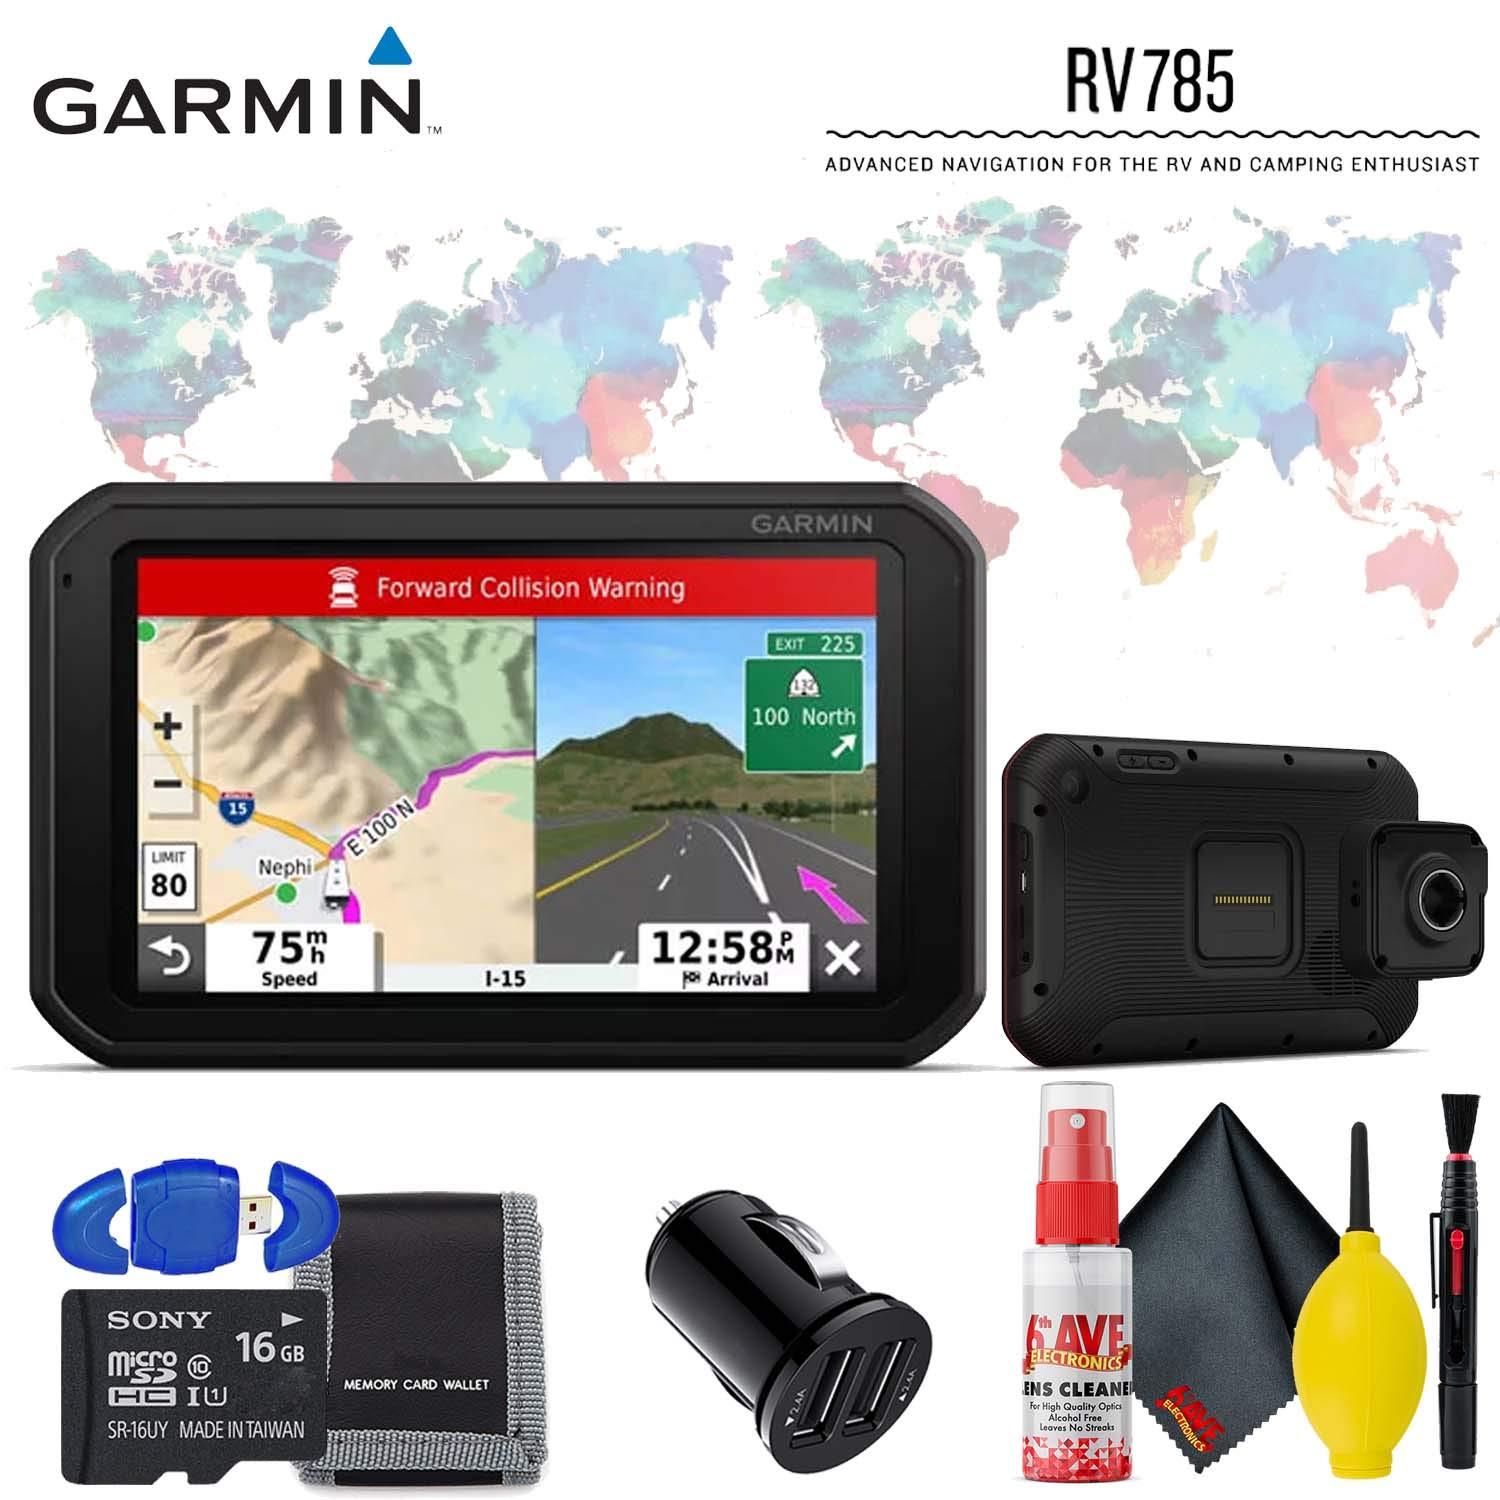 Garmin RV 785 & Traffic, Advanced GPS Navigator for RVs with Built-in Dash Cam, 7'' Touch Display and Voice-Activated Navigation Advanced Accessory Kit by Garmin